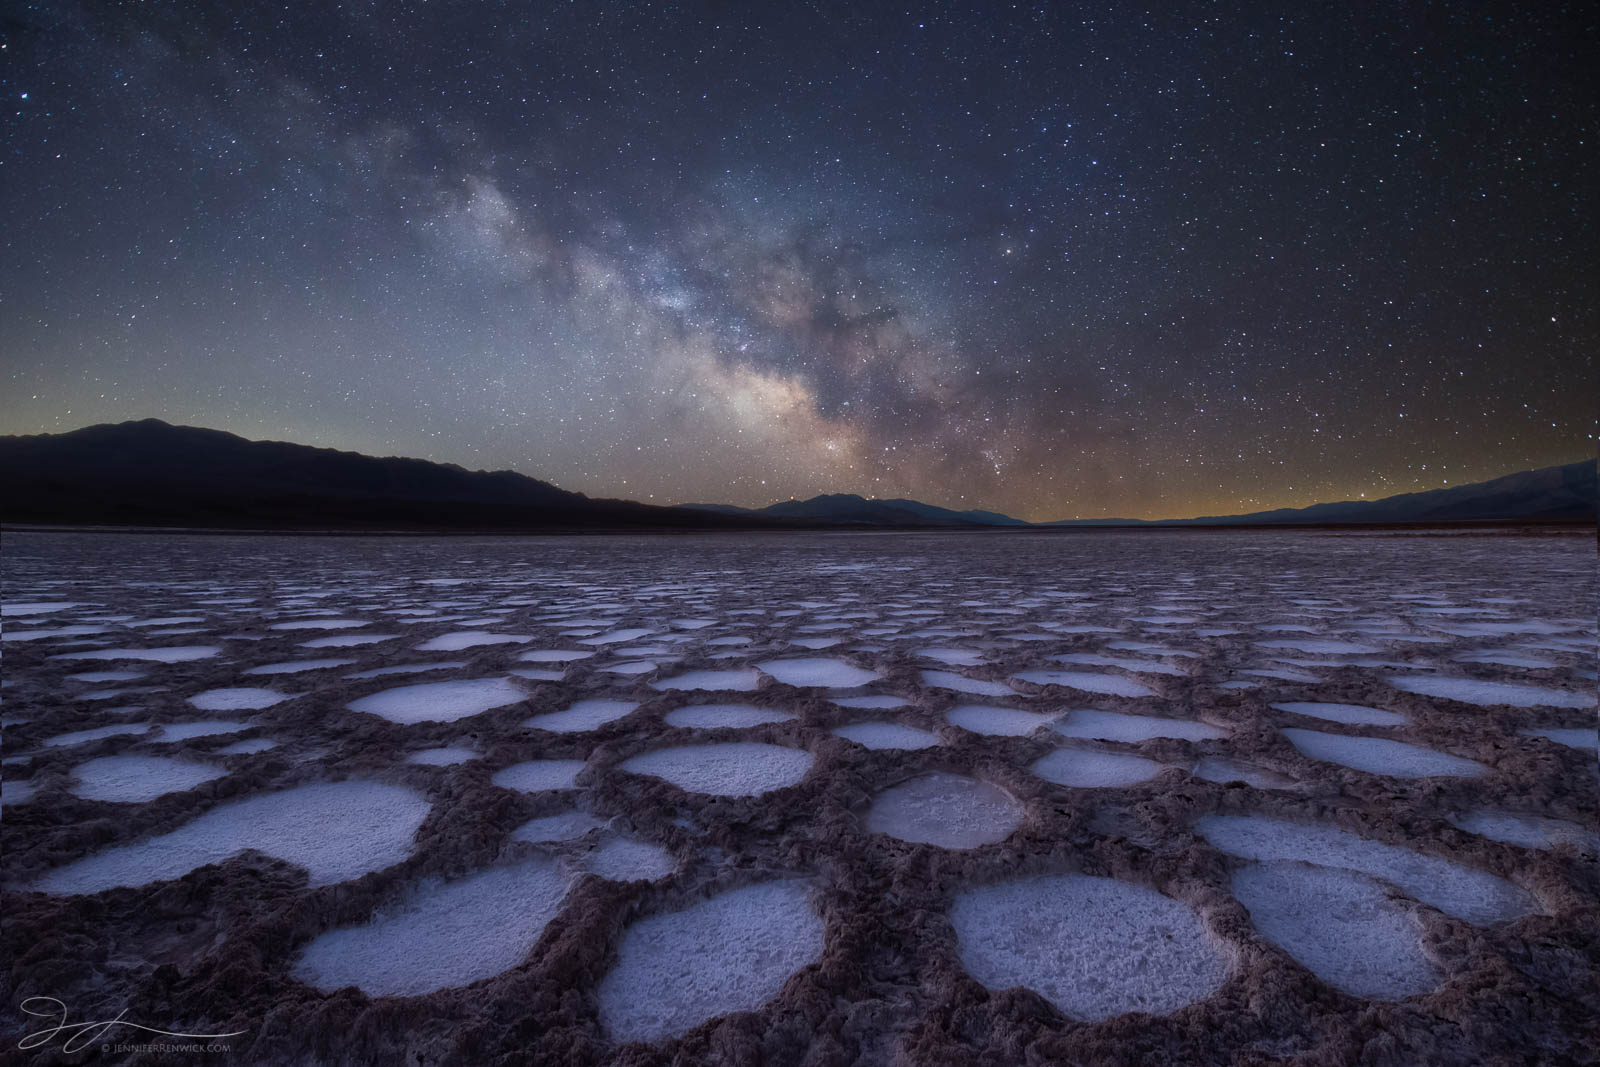 The Milky Way shines over alien formations in a playa in Death Valley National Park.